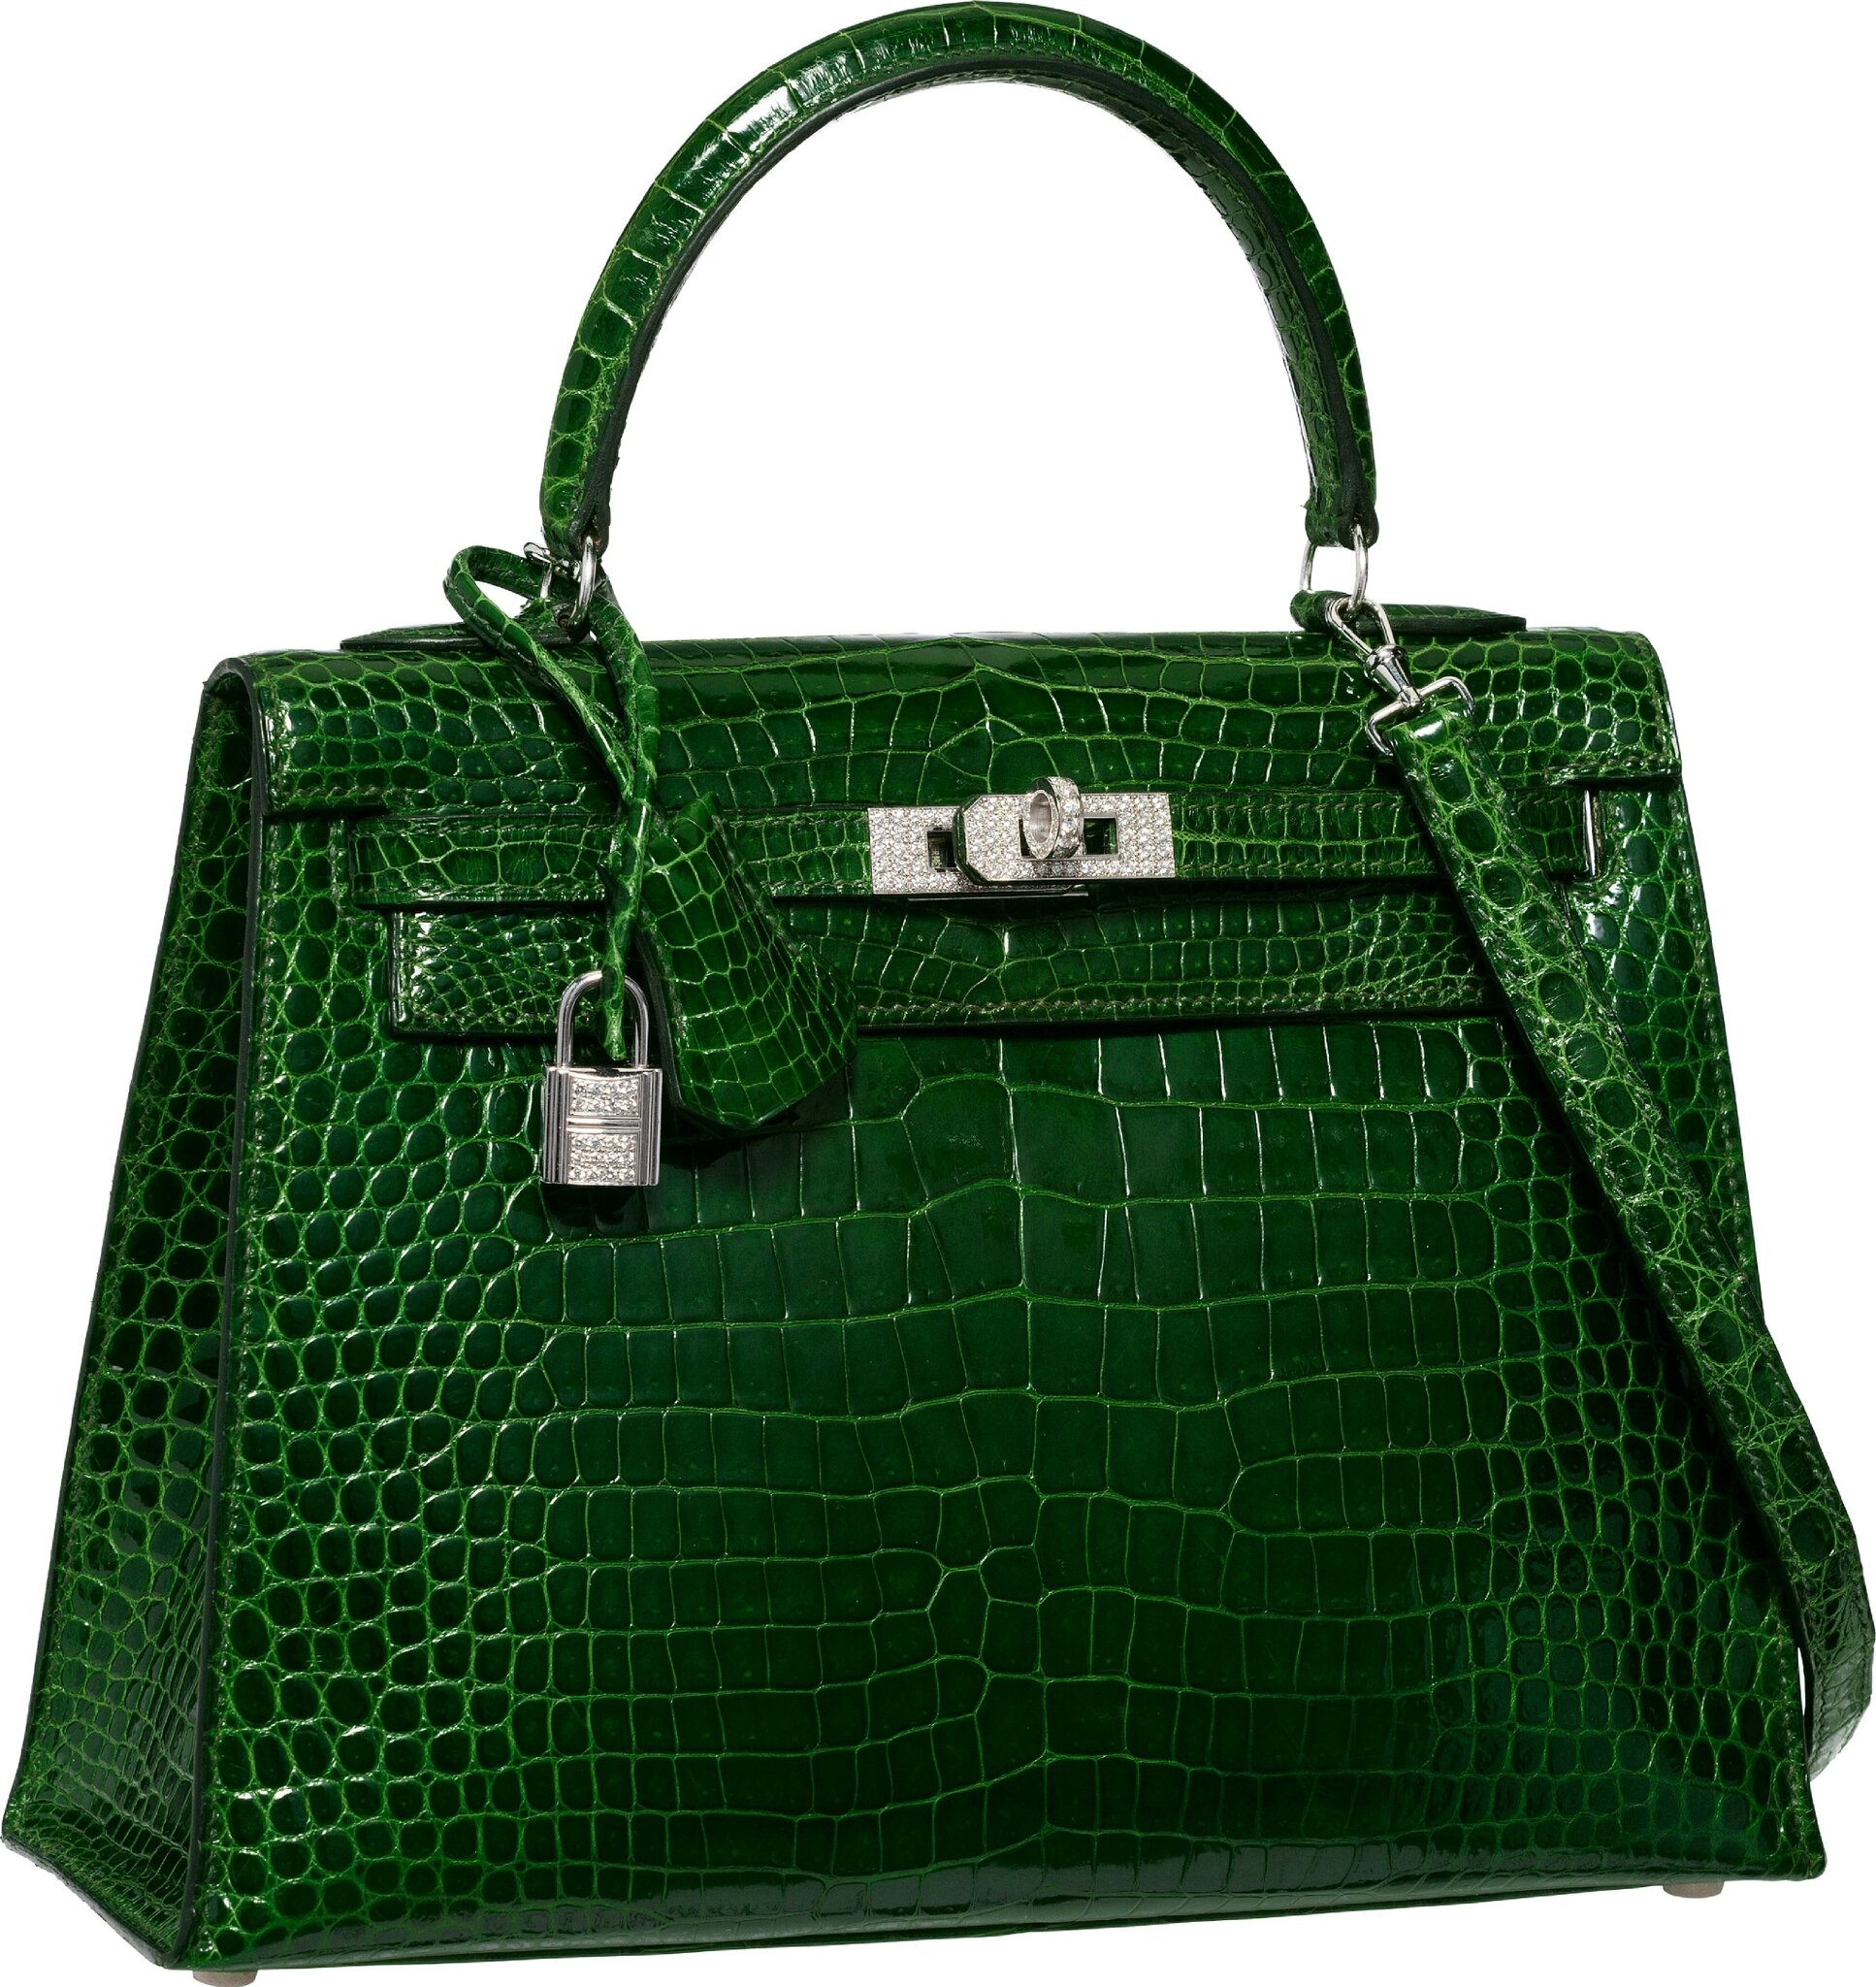 91539ca9d693 Hermès Extraordinary Collection 25cm Diamond, Shiny Vert Emerald Sellier  Kelly Bag with 18K White Gold Hardware. I Square, 2005.